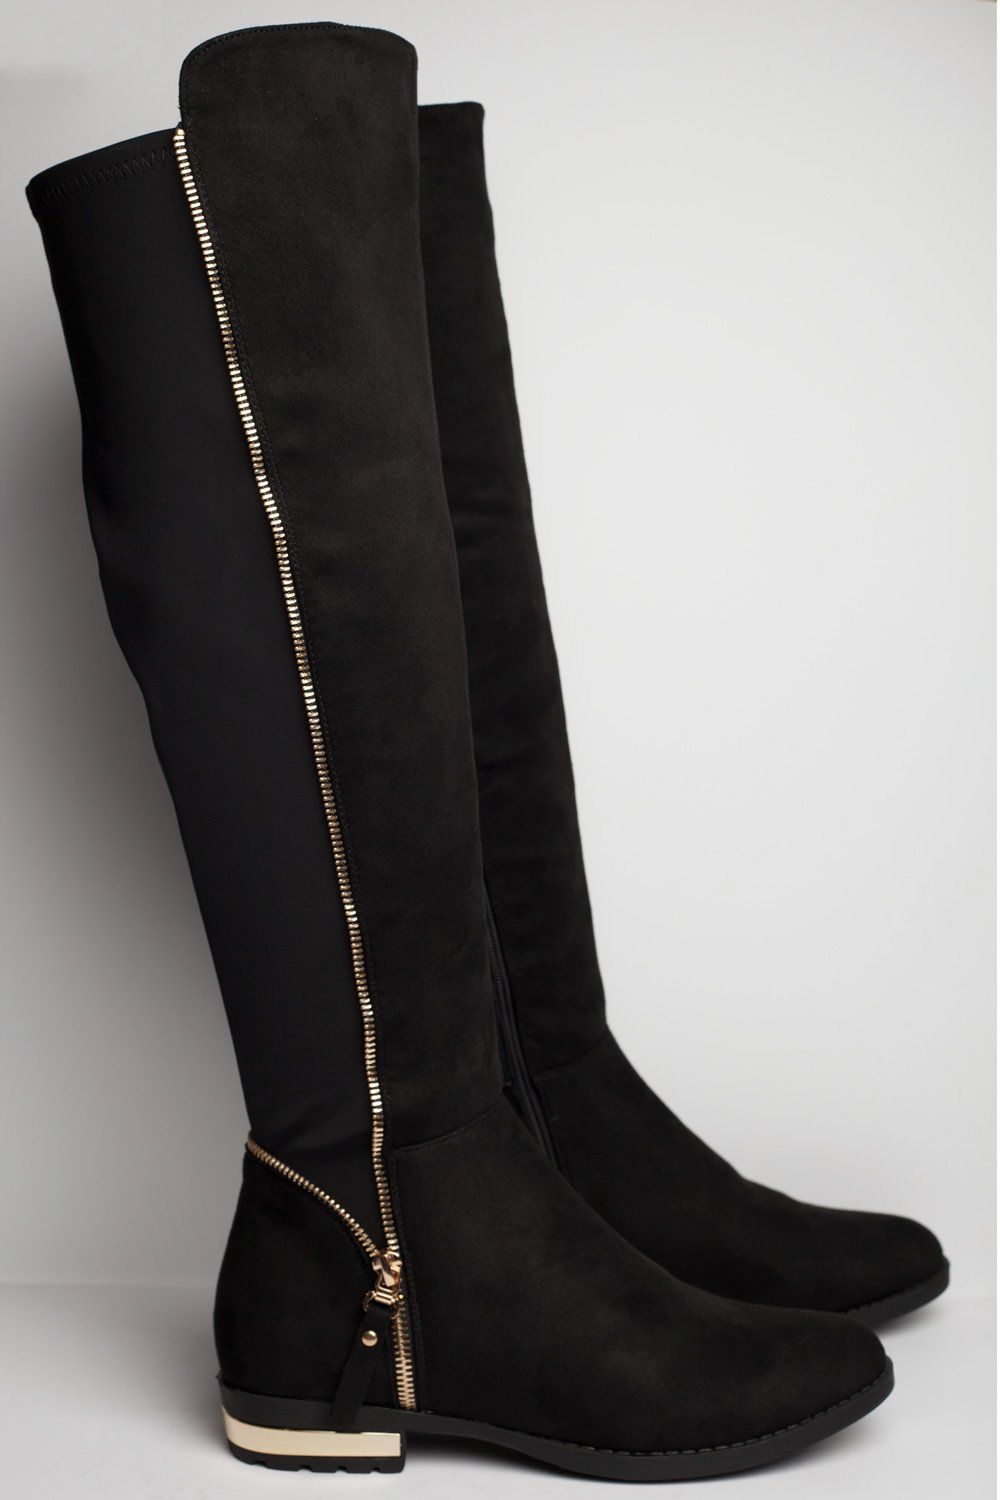 black suede knee high boots uk | High